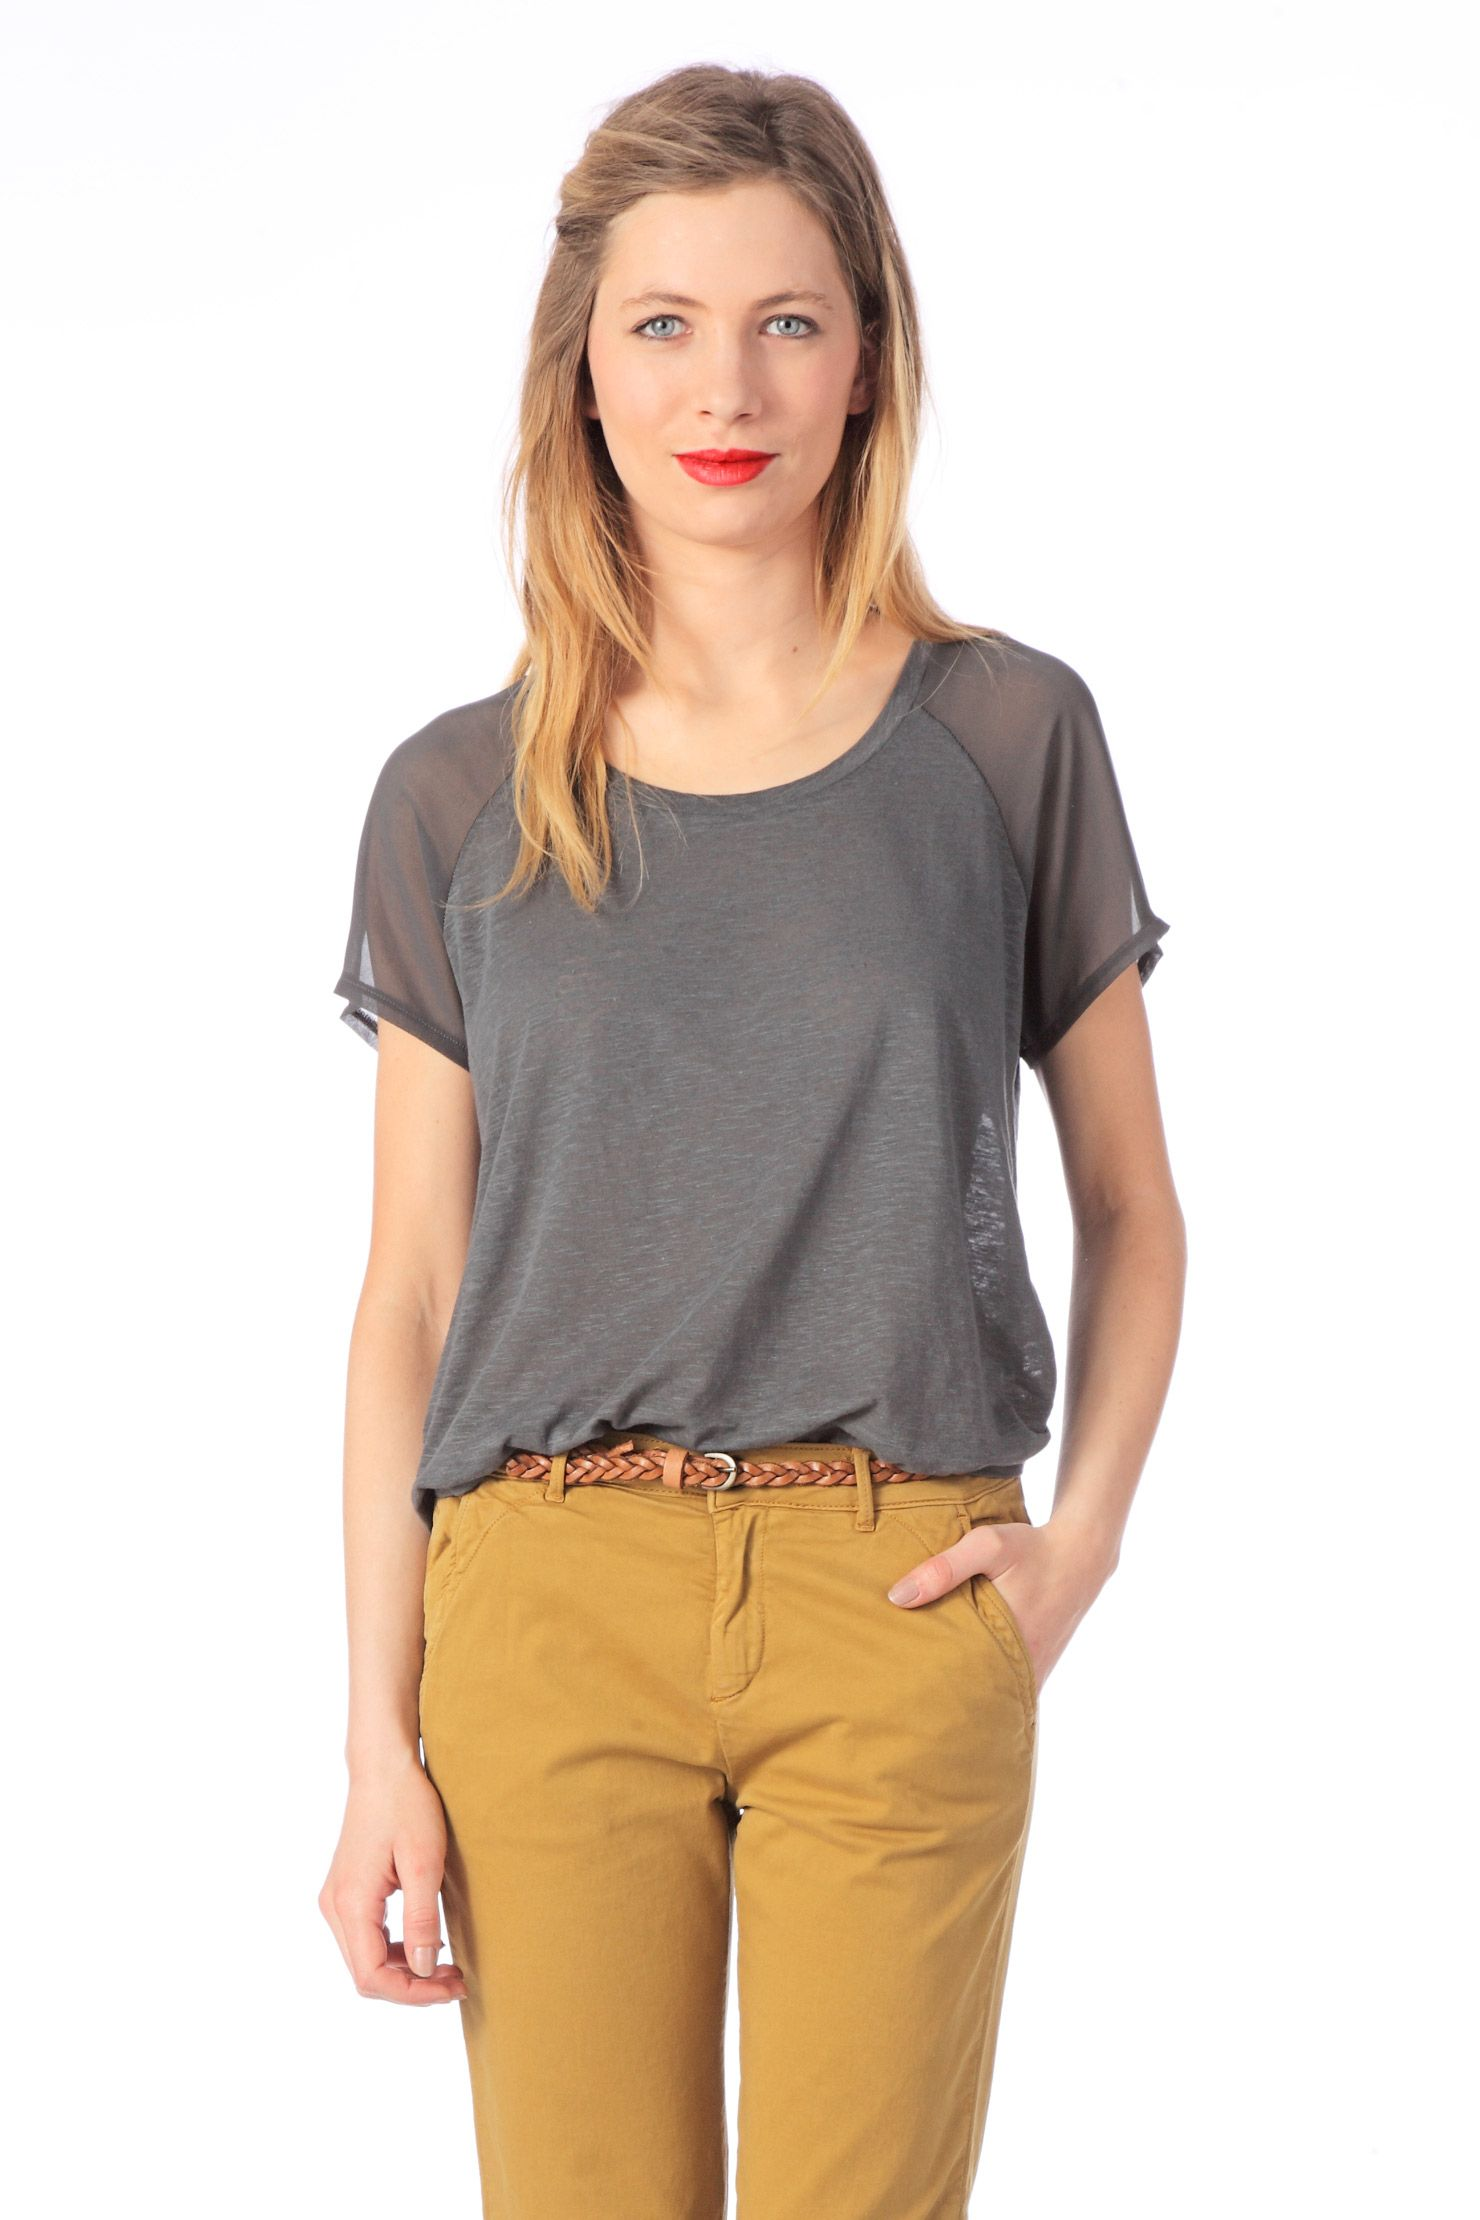 Short sleeve Top - cot81 - Grey American vintage on 50€